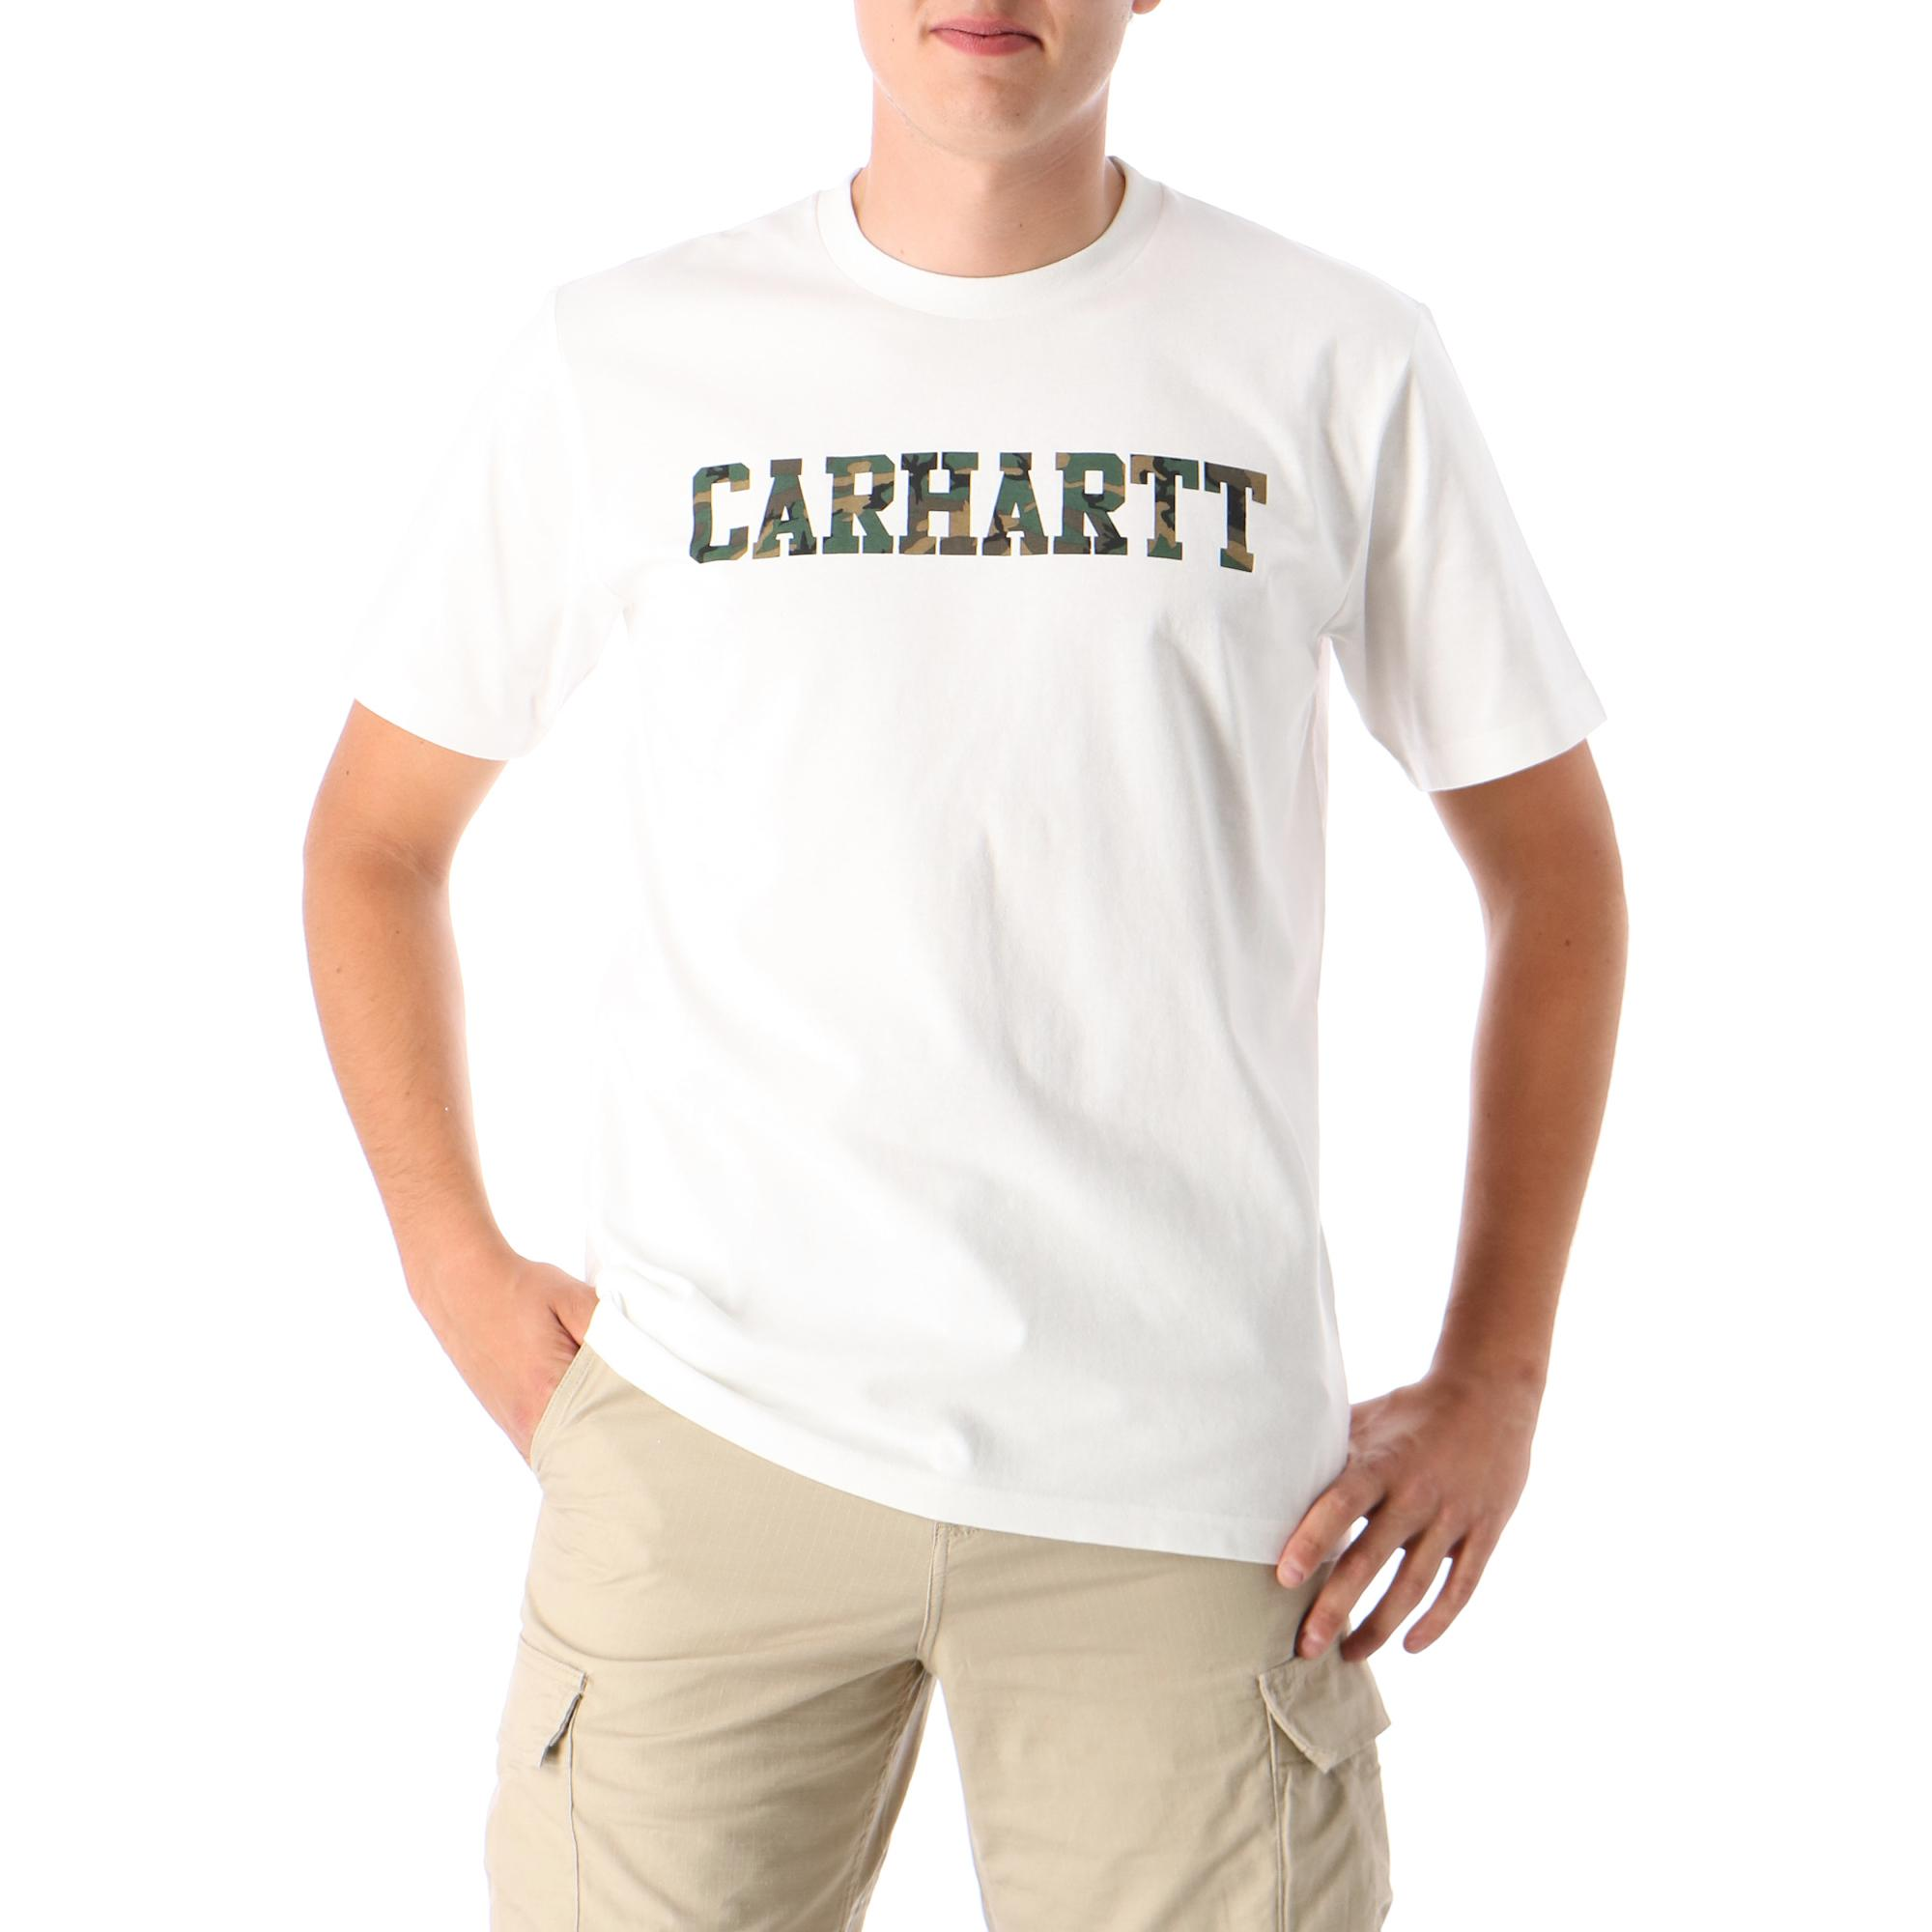 Carhartt College T-shirt White/camo laurel